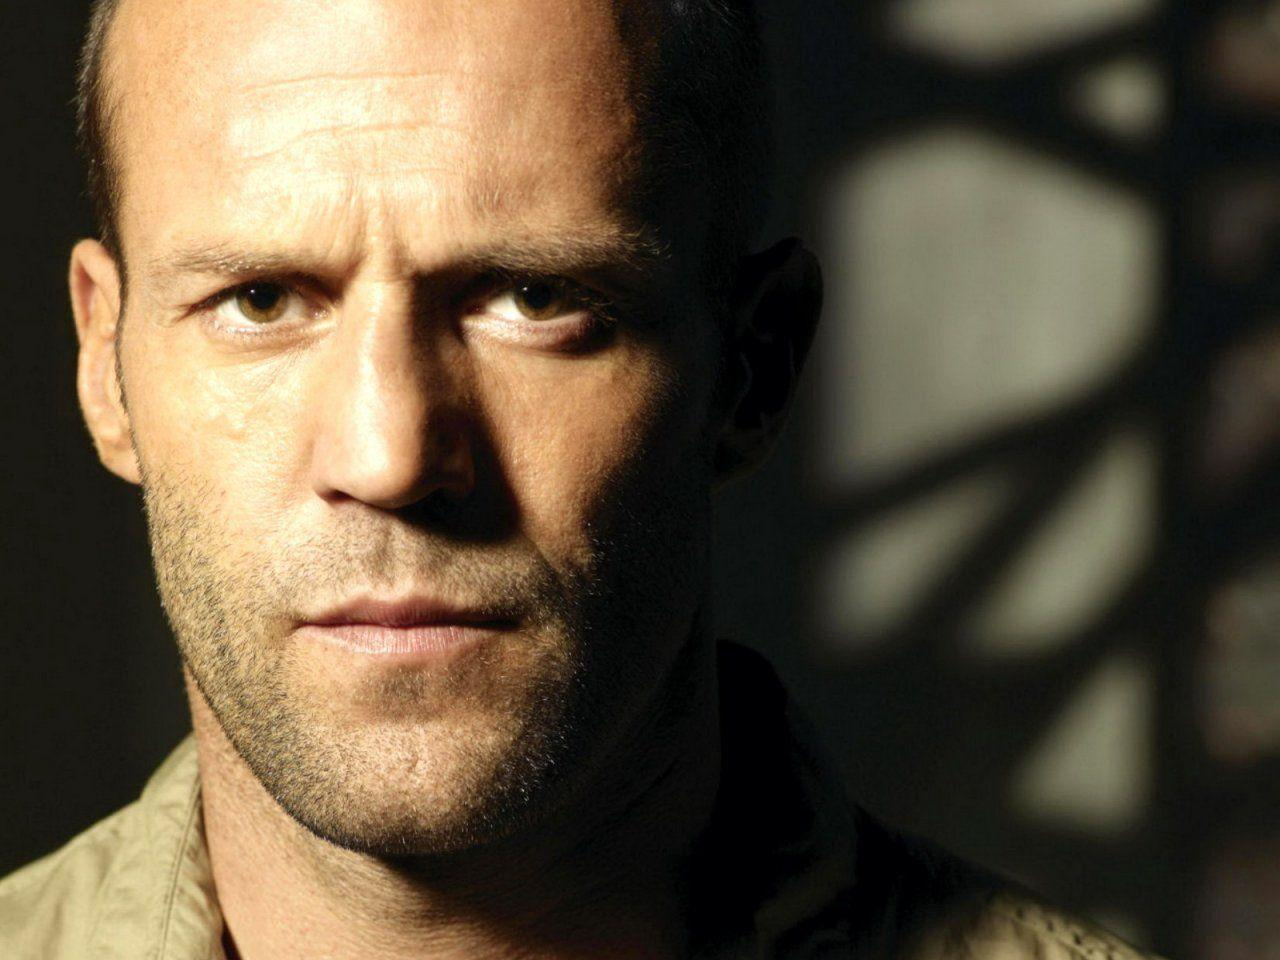 Jason Statham in Celebrities M - Wugange.